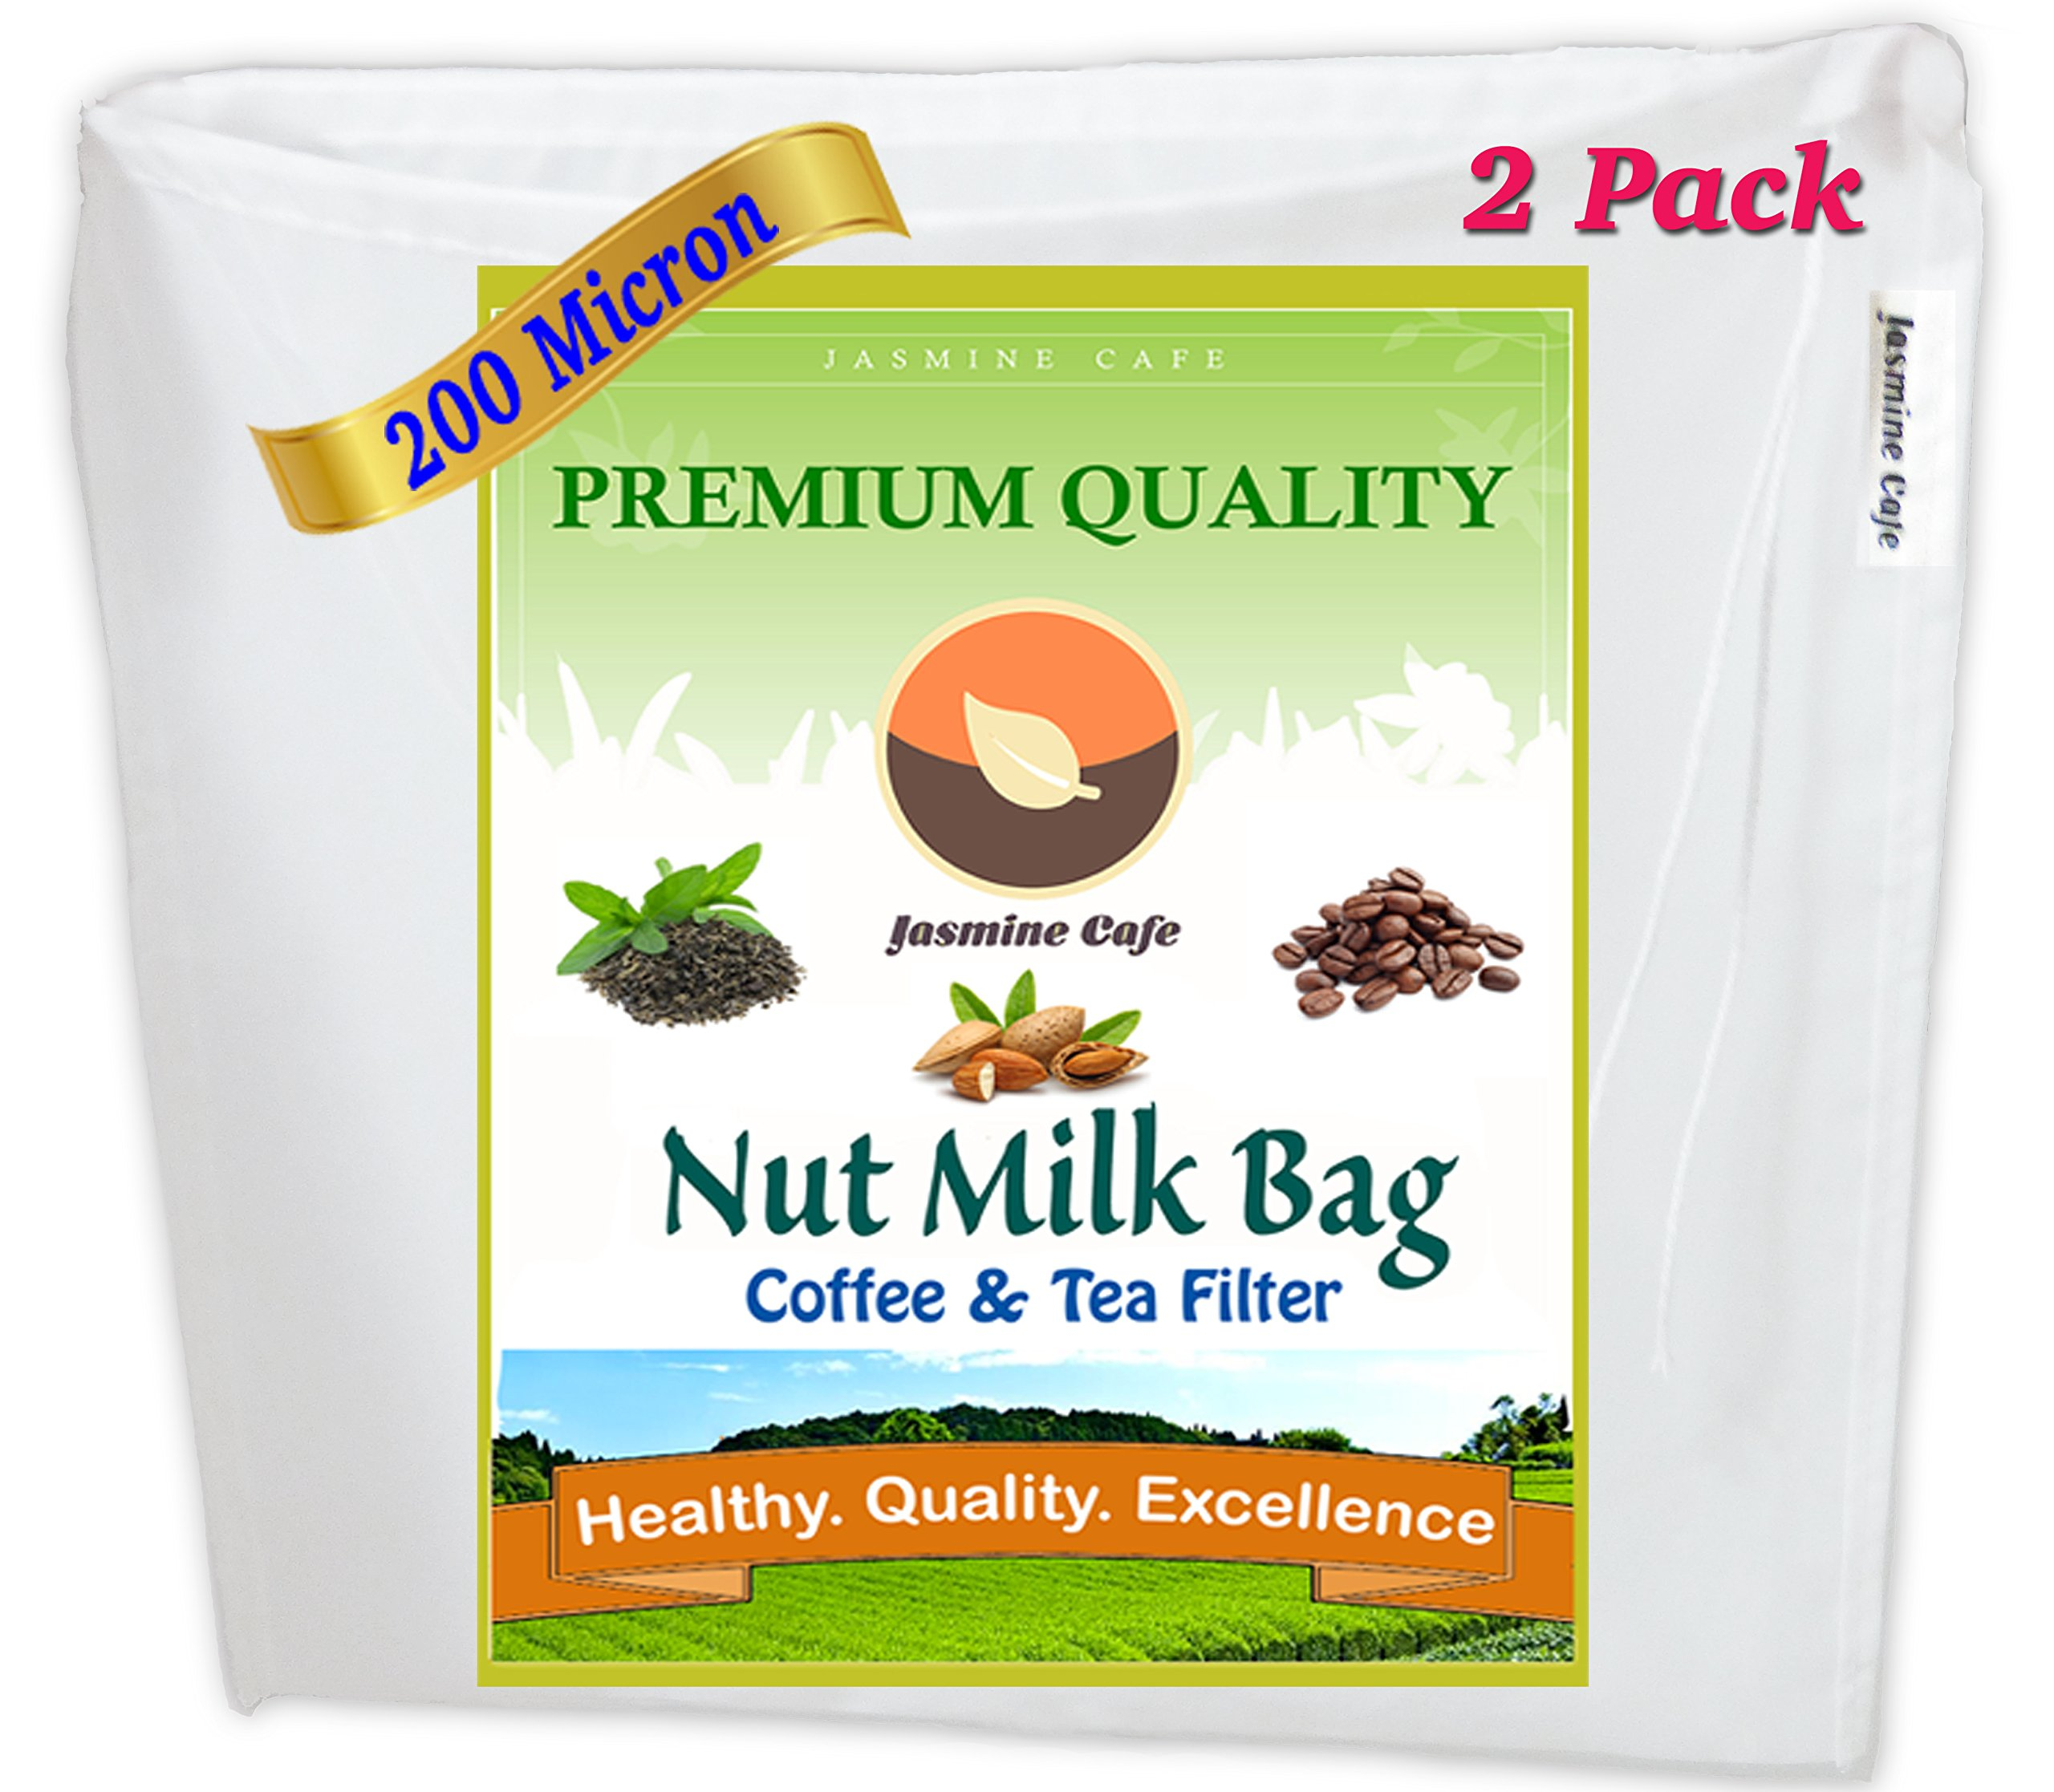 2 Pack [13''x13''] 200 Micron - Commercial Grade Jasmine Cafe Nut Milk Bag & All Purpose Food Strainer - Fine Mesh Cold Brew Coffee & Tea Filter - Reusable, Safe & Eco-Friendly